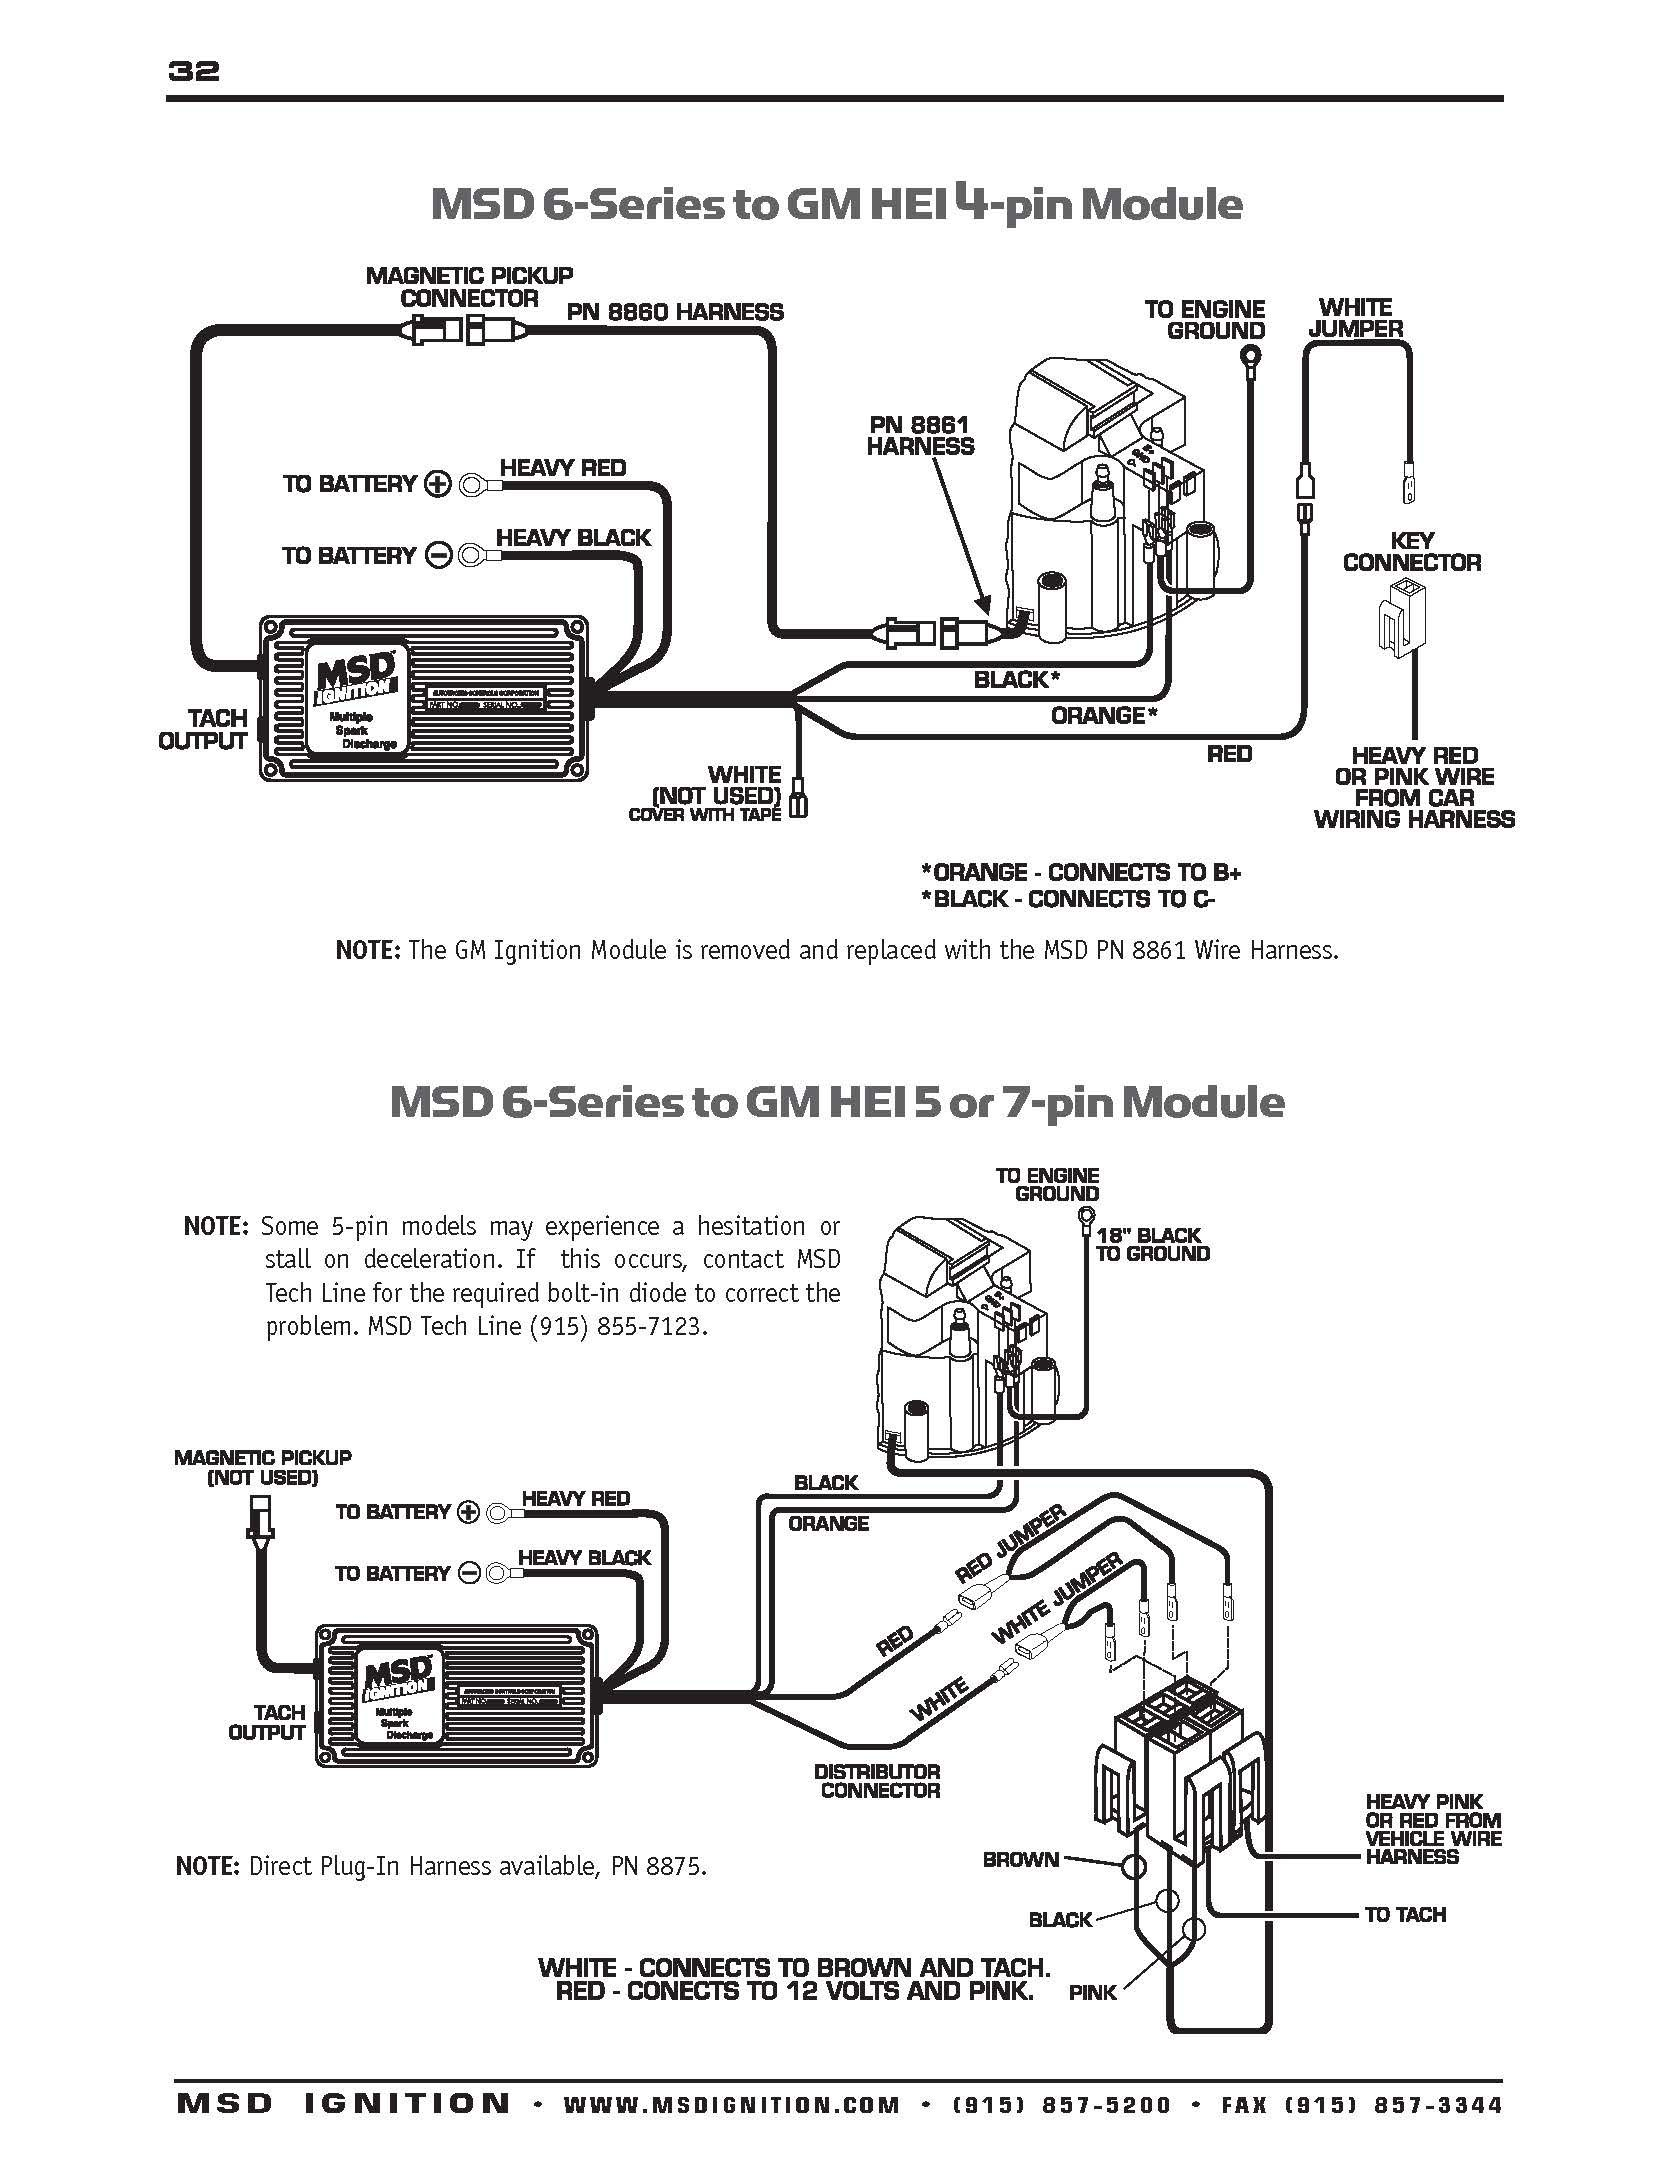 msd ignition wiring diagrams 1966 chevelle pinterest cars rh pinterest com  1966 chevelle wire diagram 66